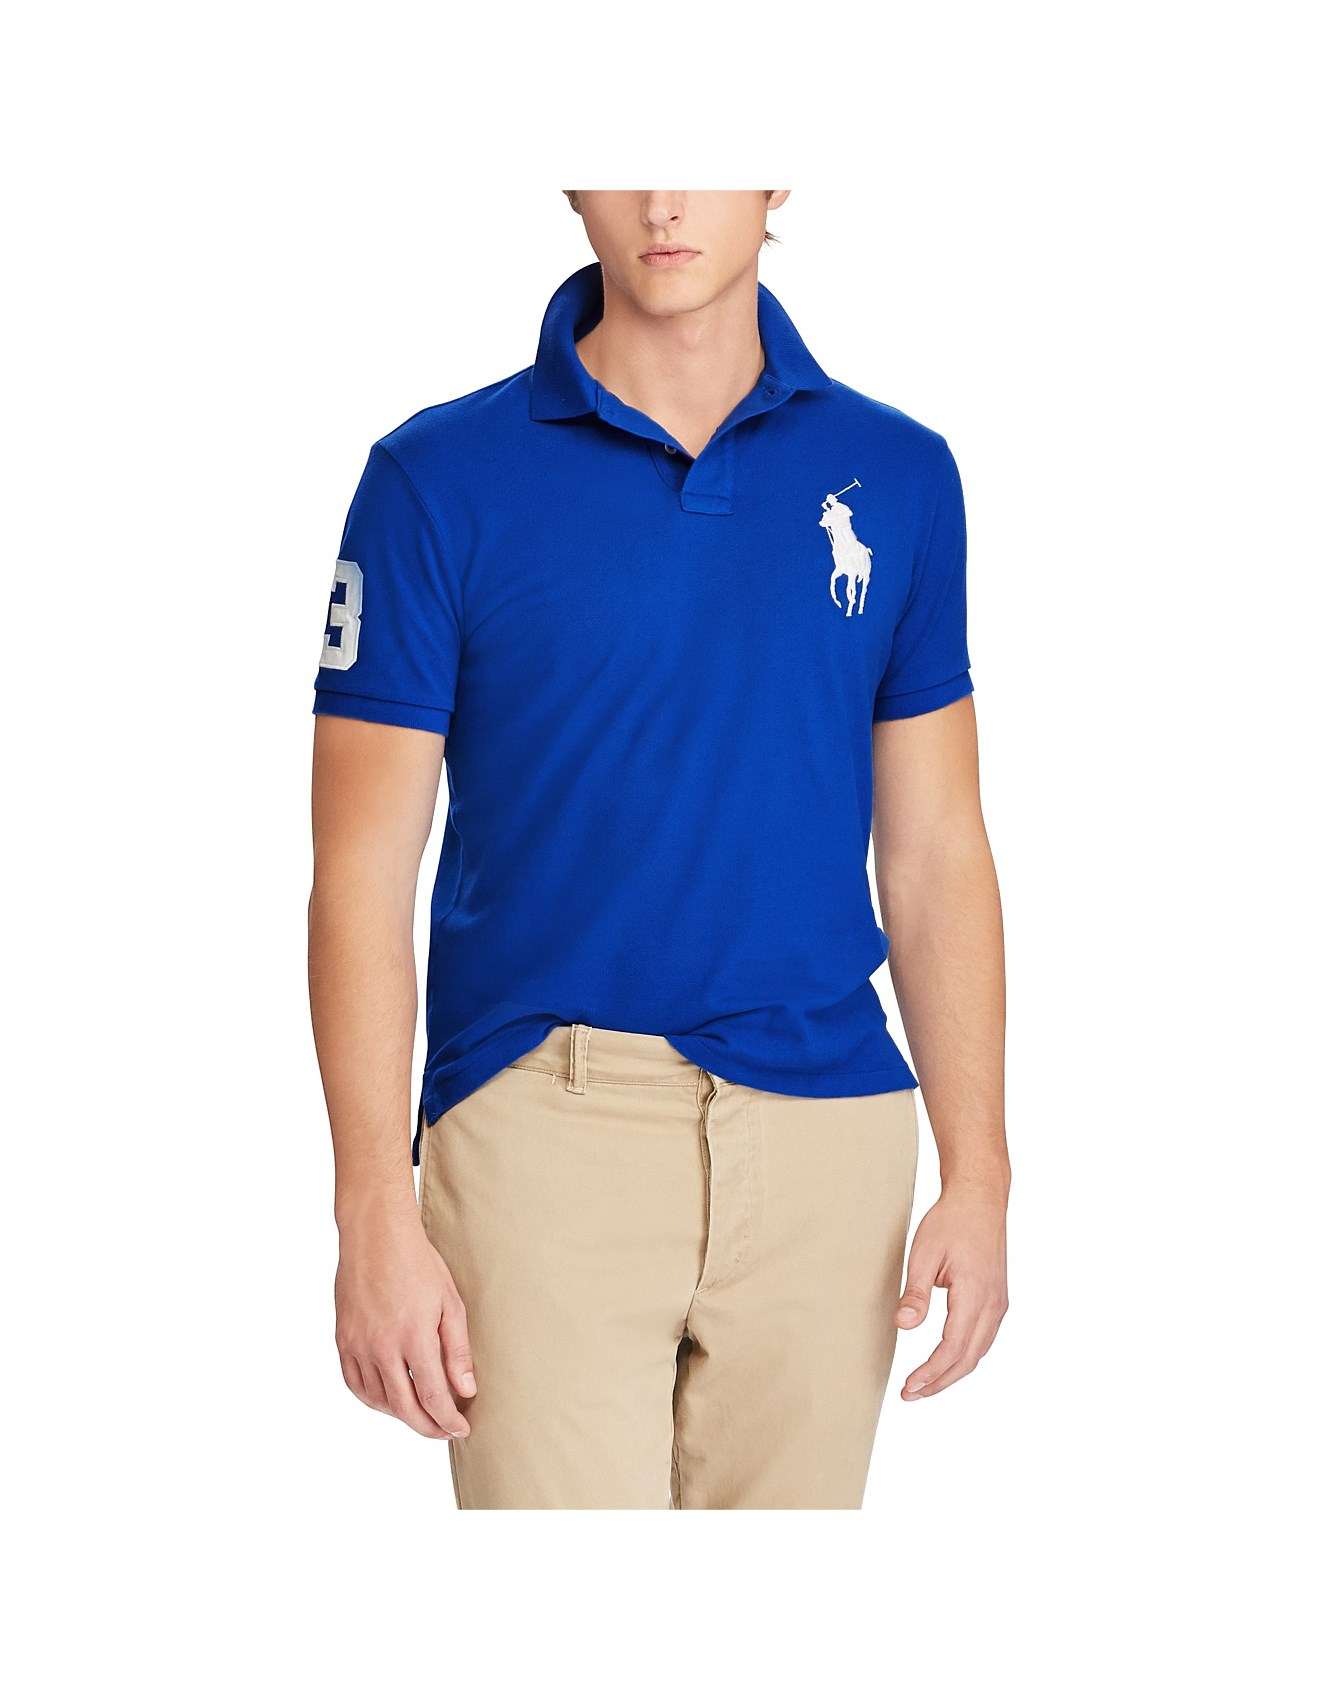 ddee084916cd Men s Custom Slim Fit Mesh Polo